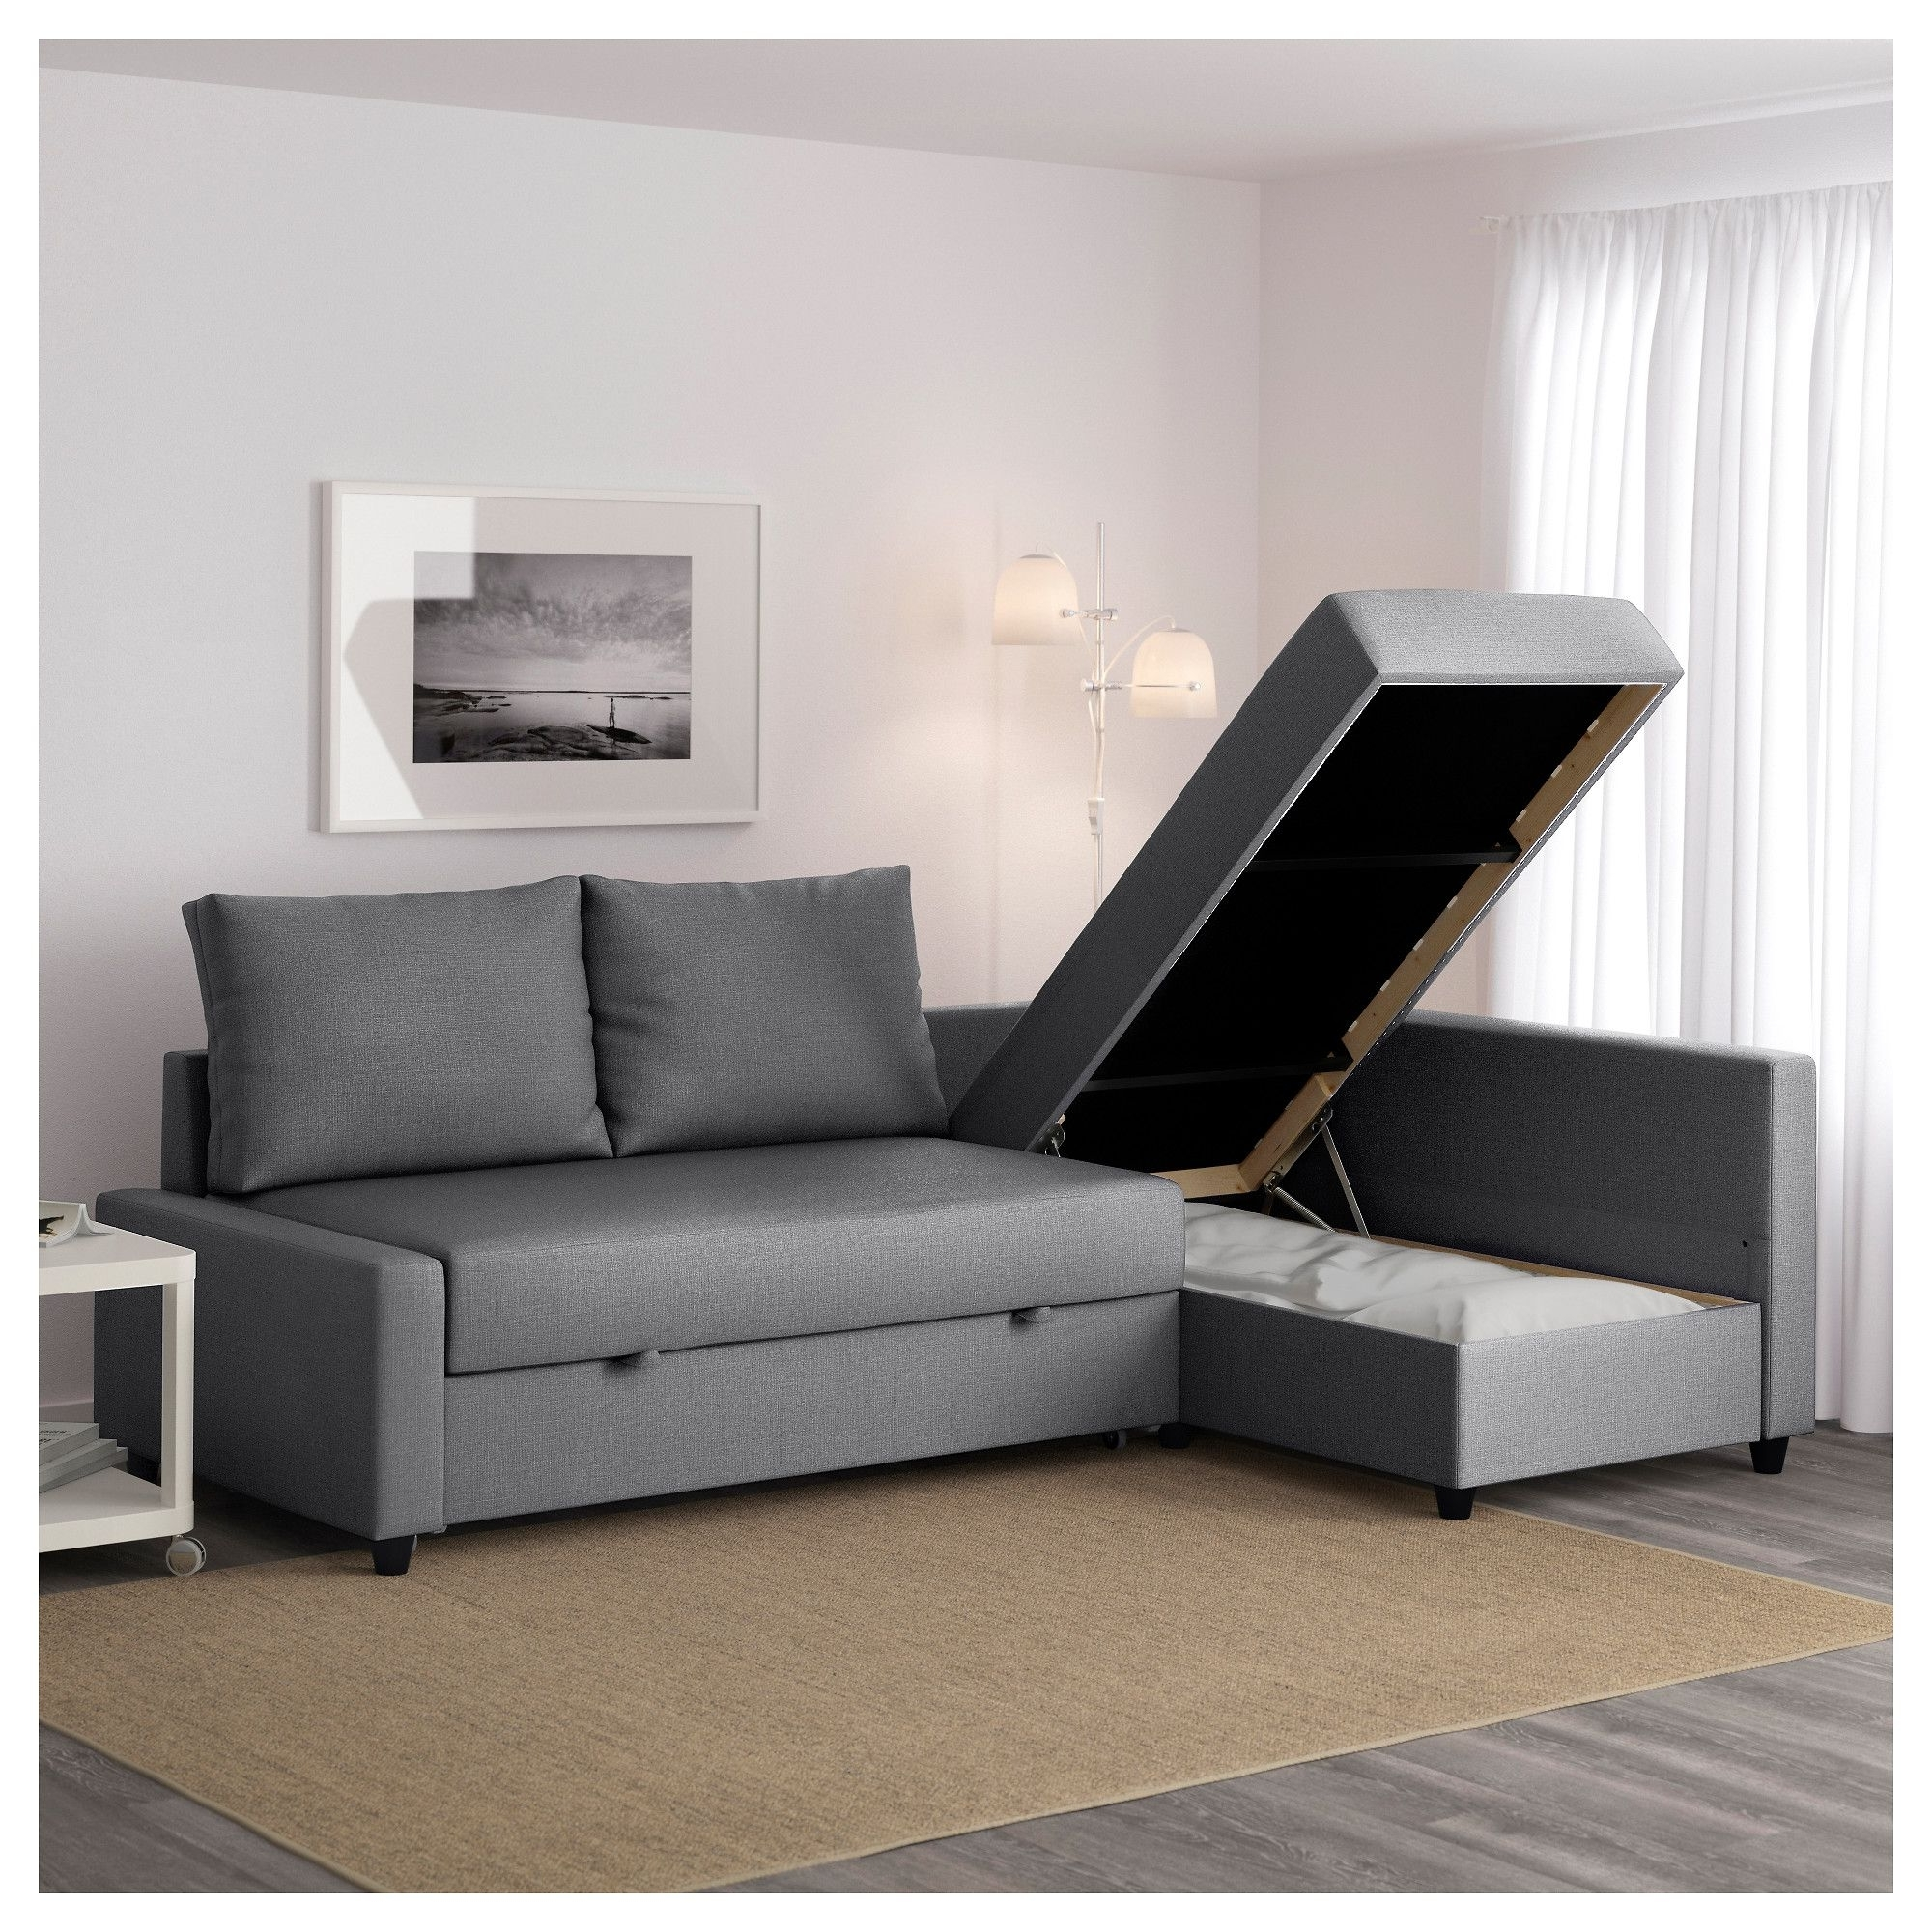 Ikea Corner Sofas With Storage In Best And Newest Friheten Corner Sofa Bed With Storage Skiftebo Dark Grey (View 9 of 20)